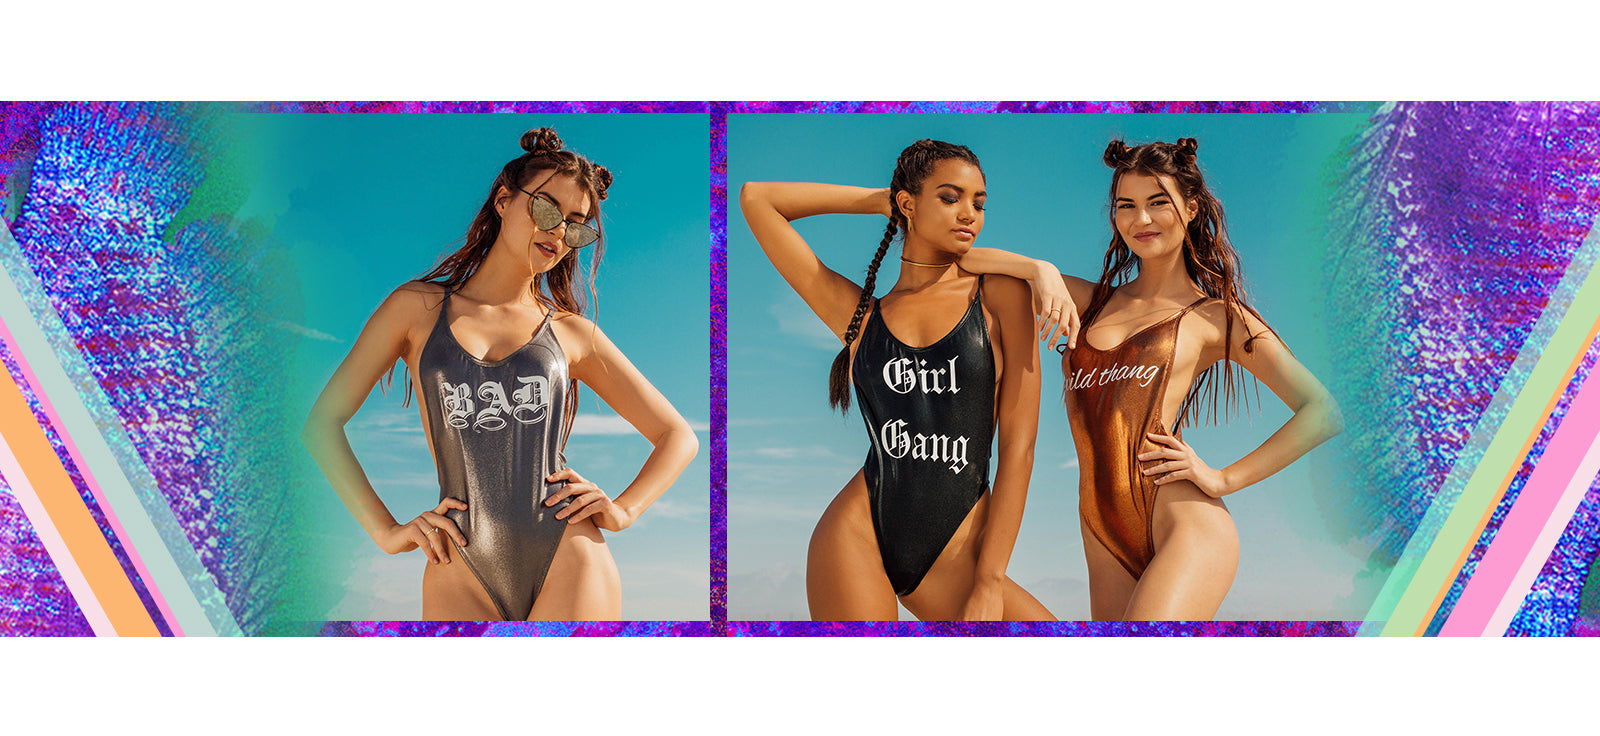 Bad, Girl Gang and Wild Thang - REVIBE by Dippin' Daisy's Swimwear